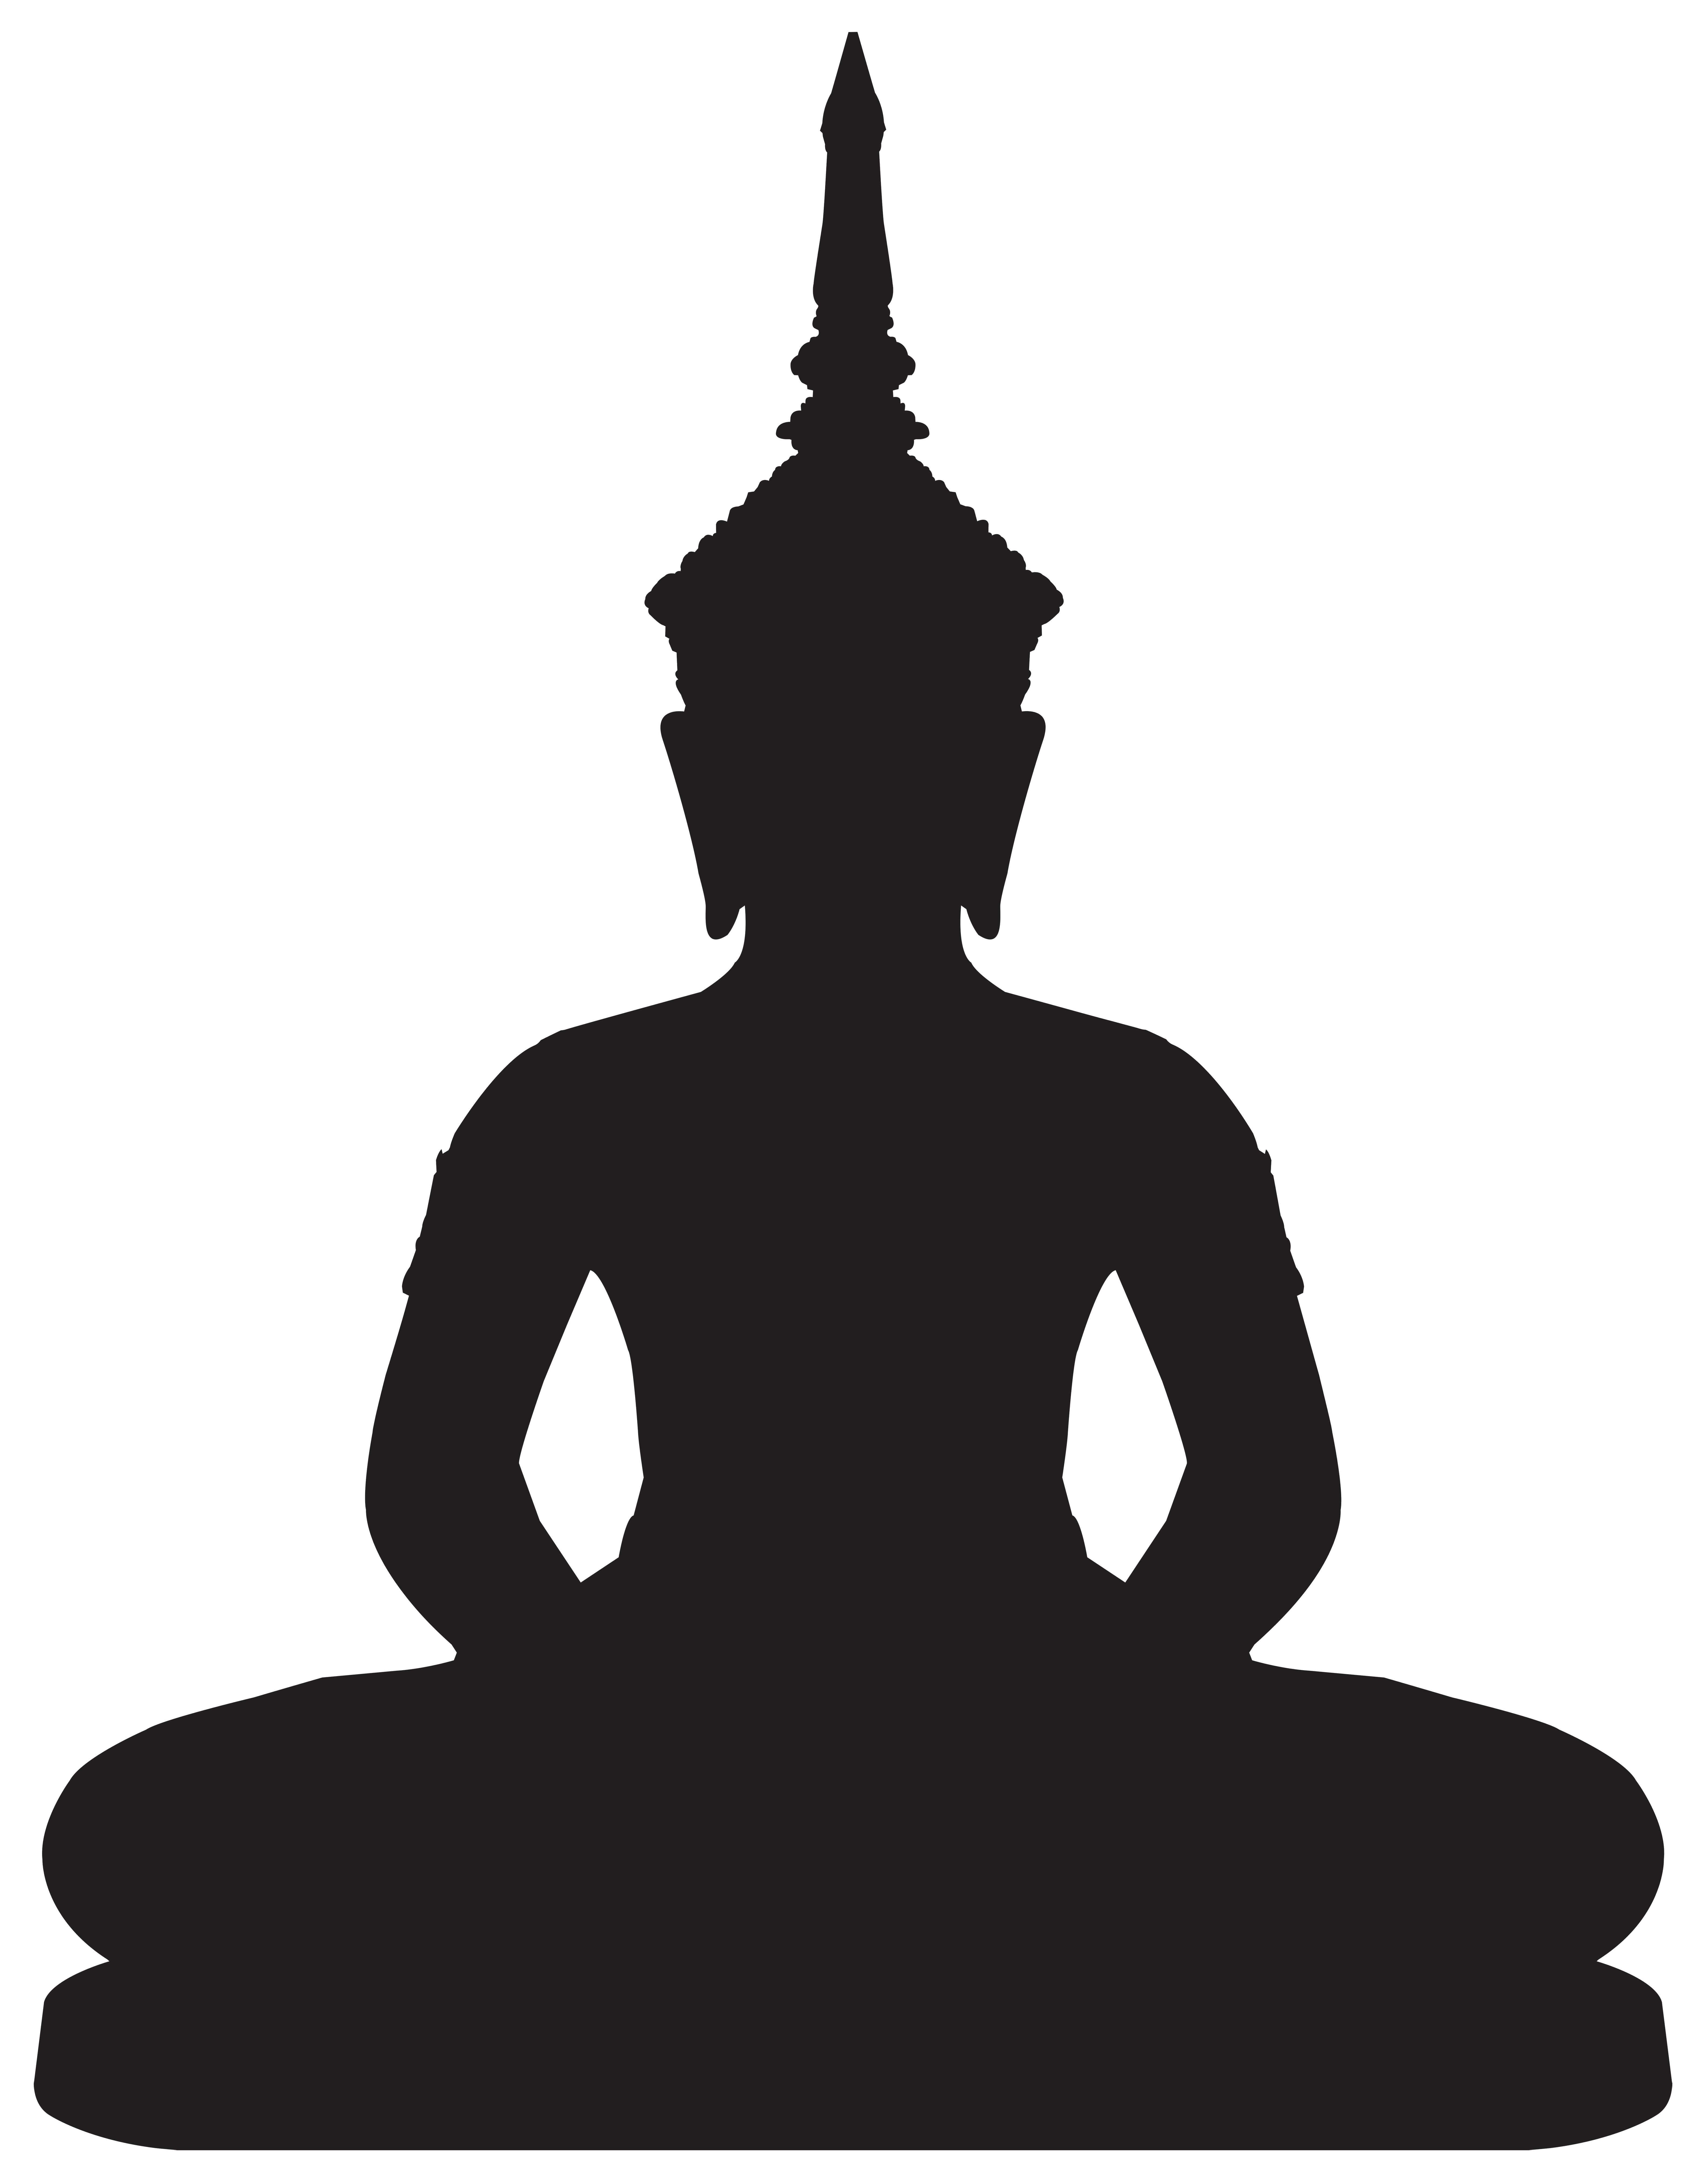 vector library stock Buddha clipart logo. Statue silhouette png clip.